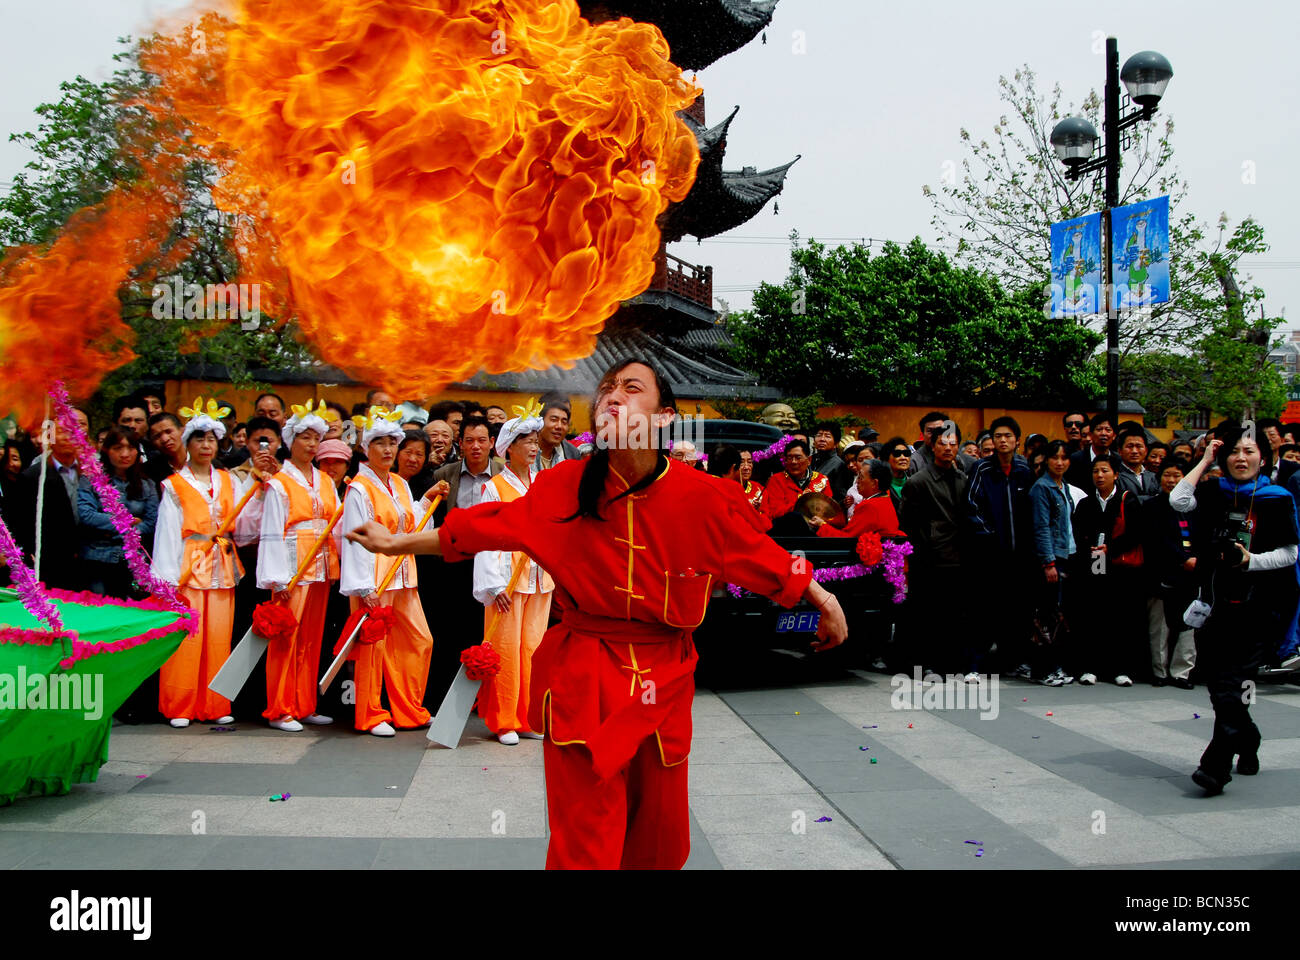 Fire eater performance in City God's Temple, Shanghai, China - Stock Image